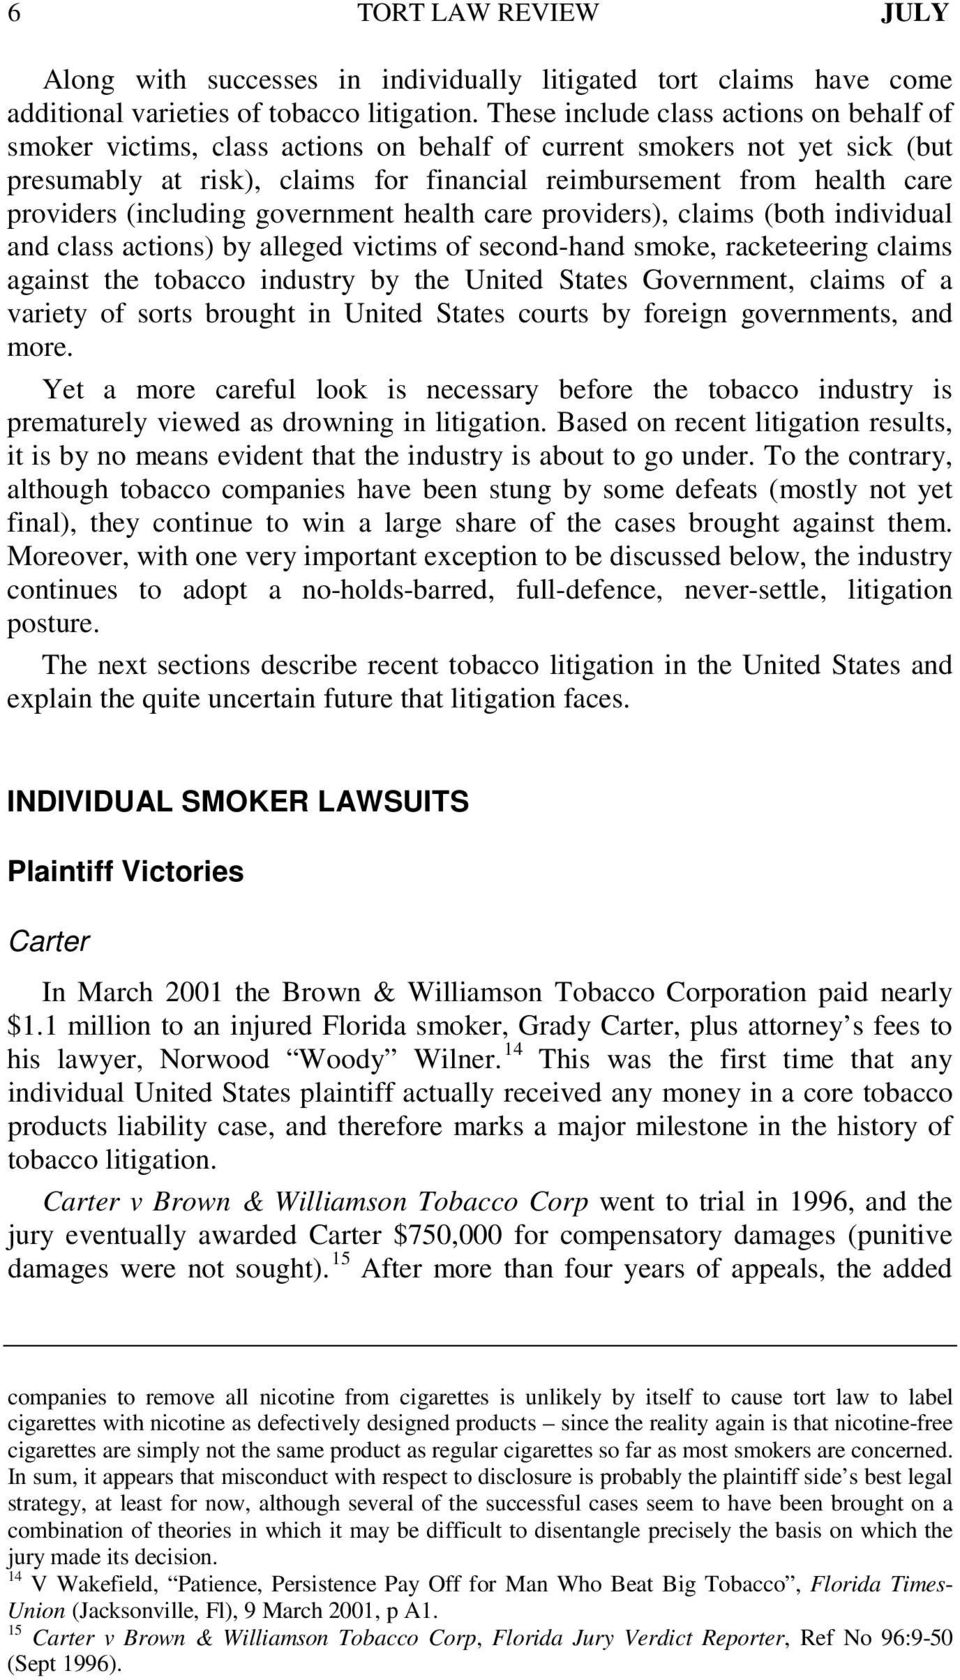 providers (including government health care providers), claims (both individual and class actions) by alleged victims of second-hand smoke, racketeering claims against the tobacco industry by the